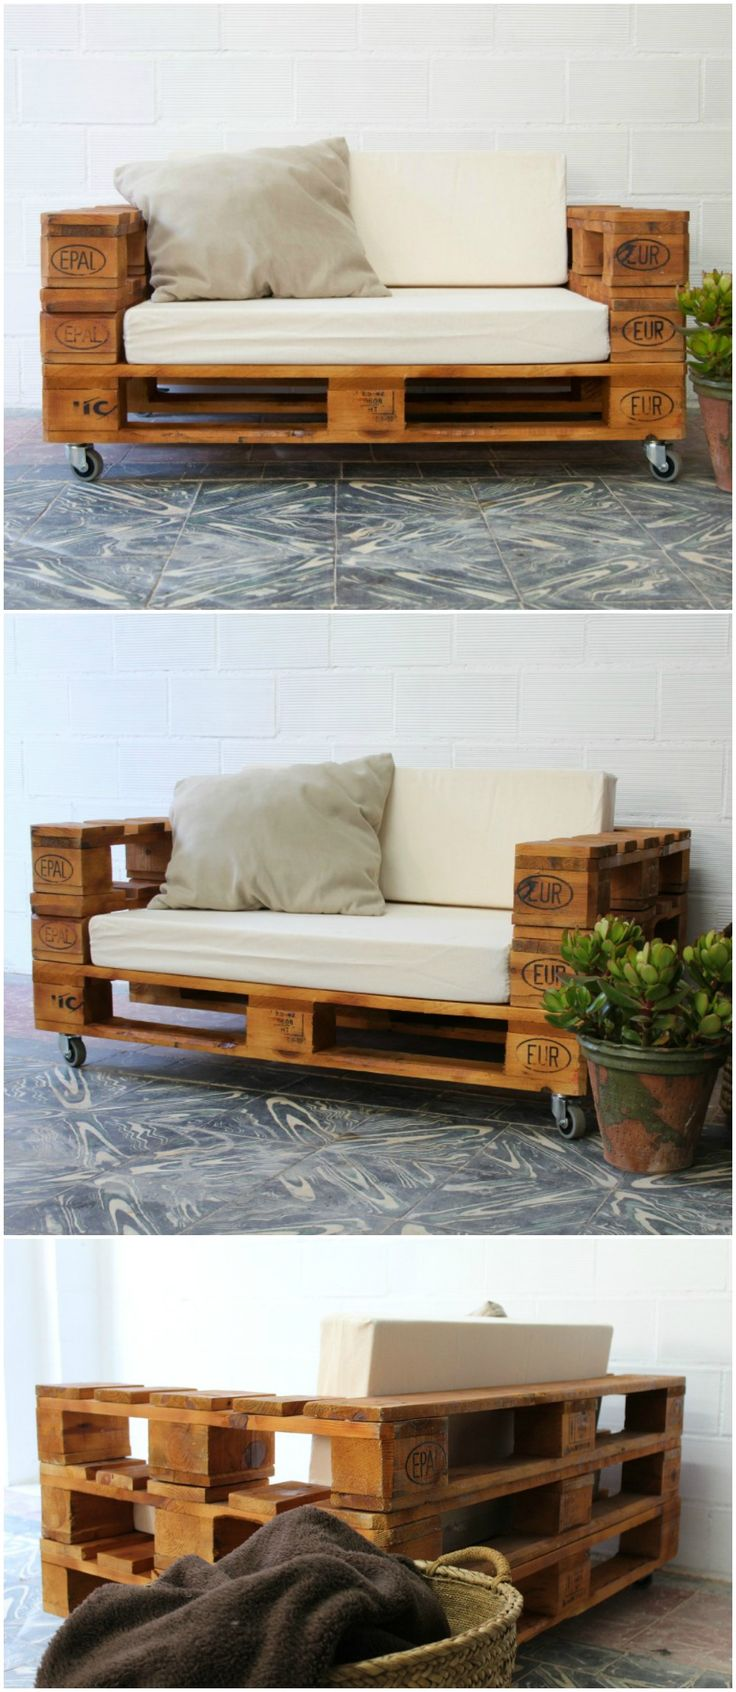 Best 25 pallet sofa ideas on pinterest palette - Muebles con palets ...